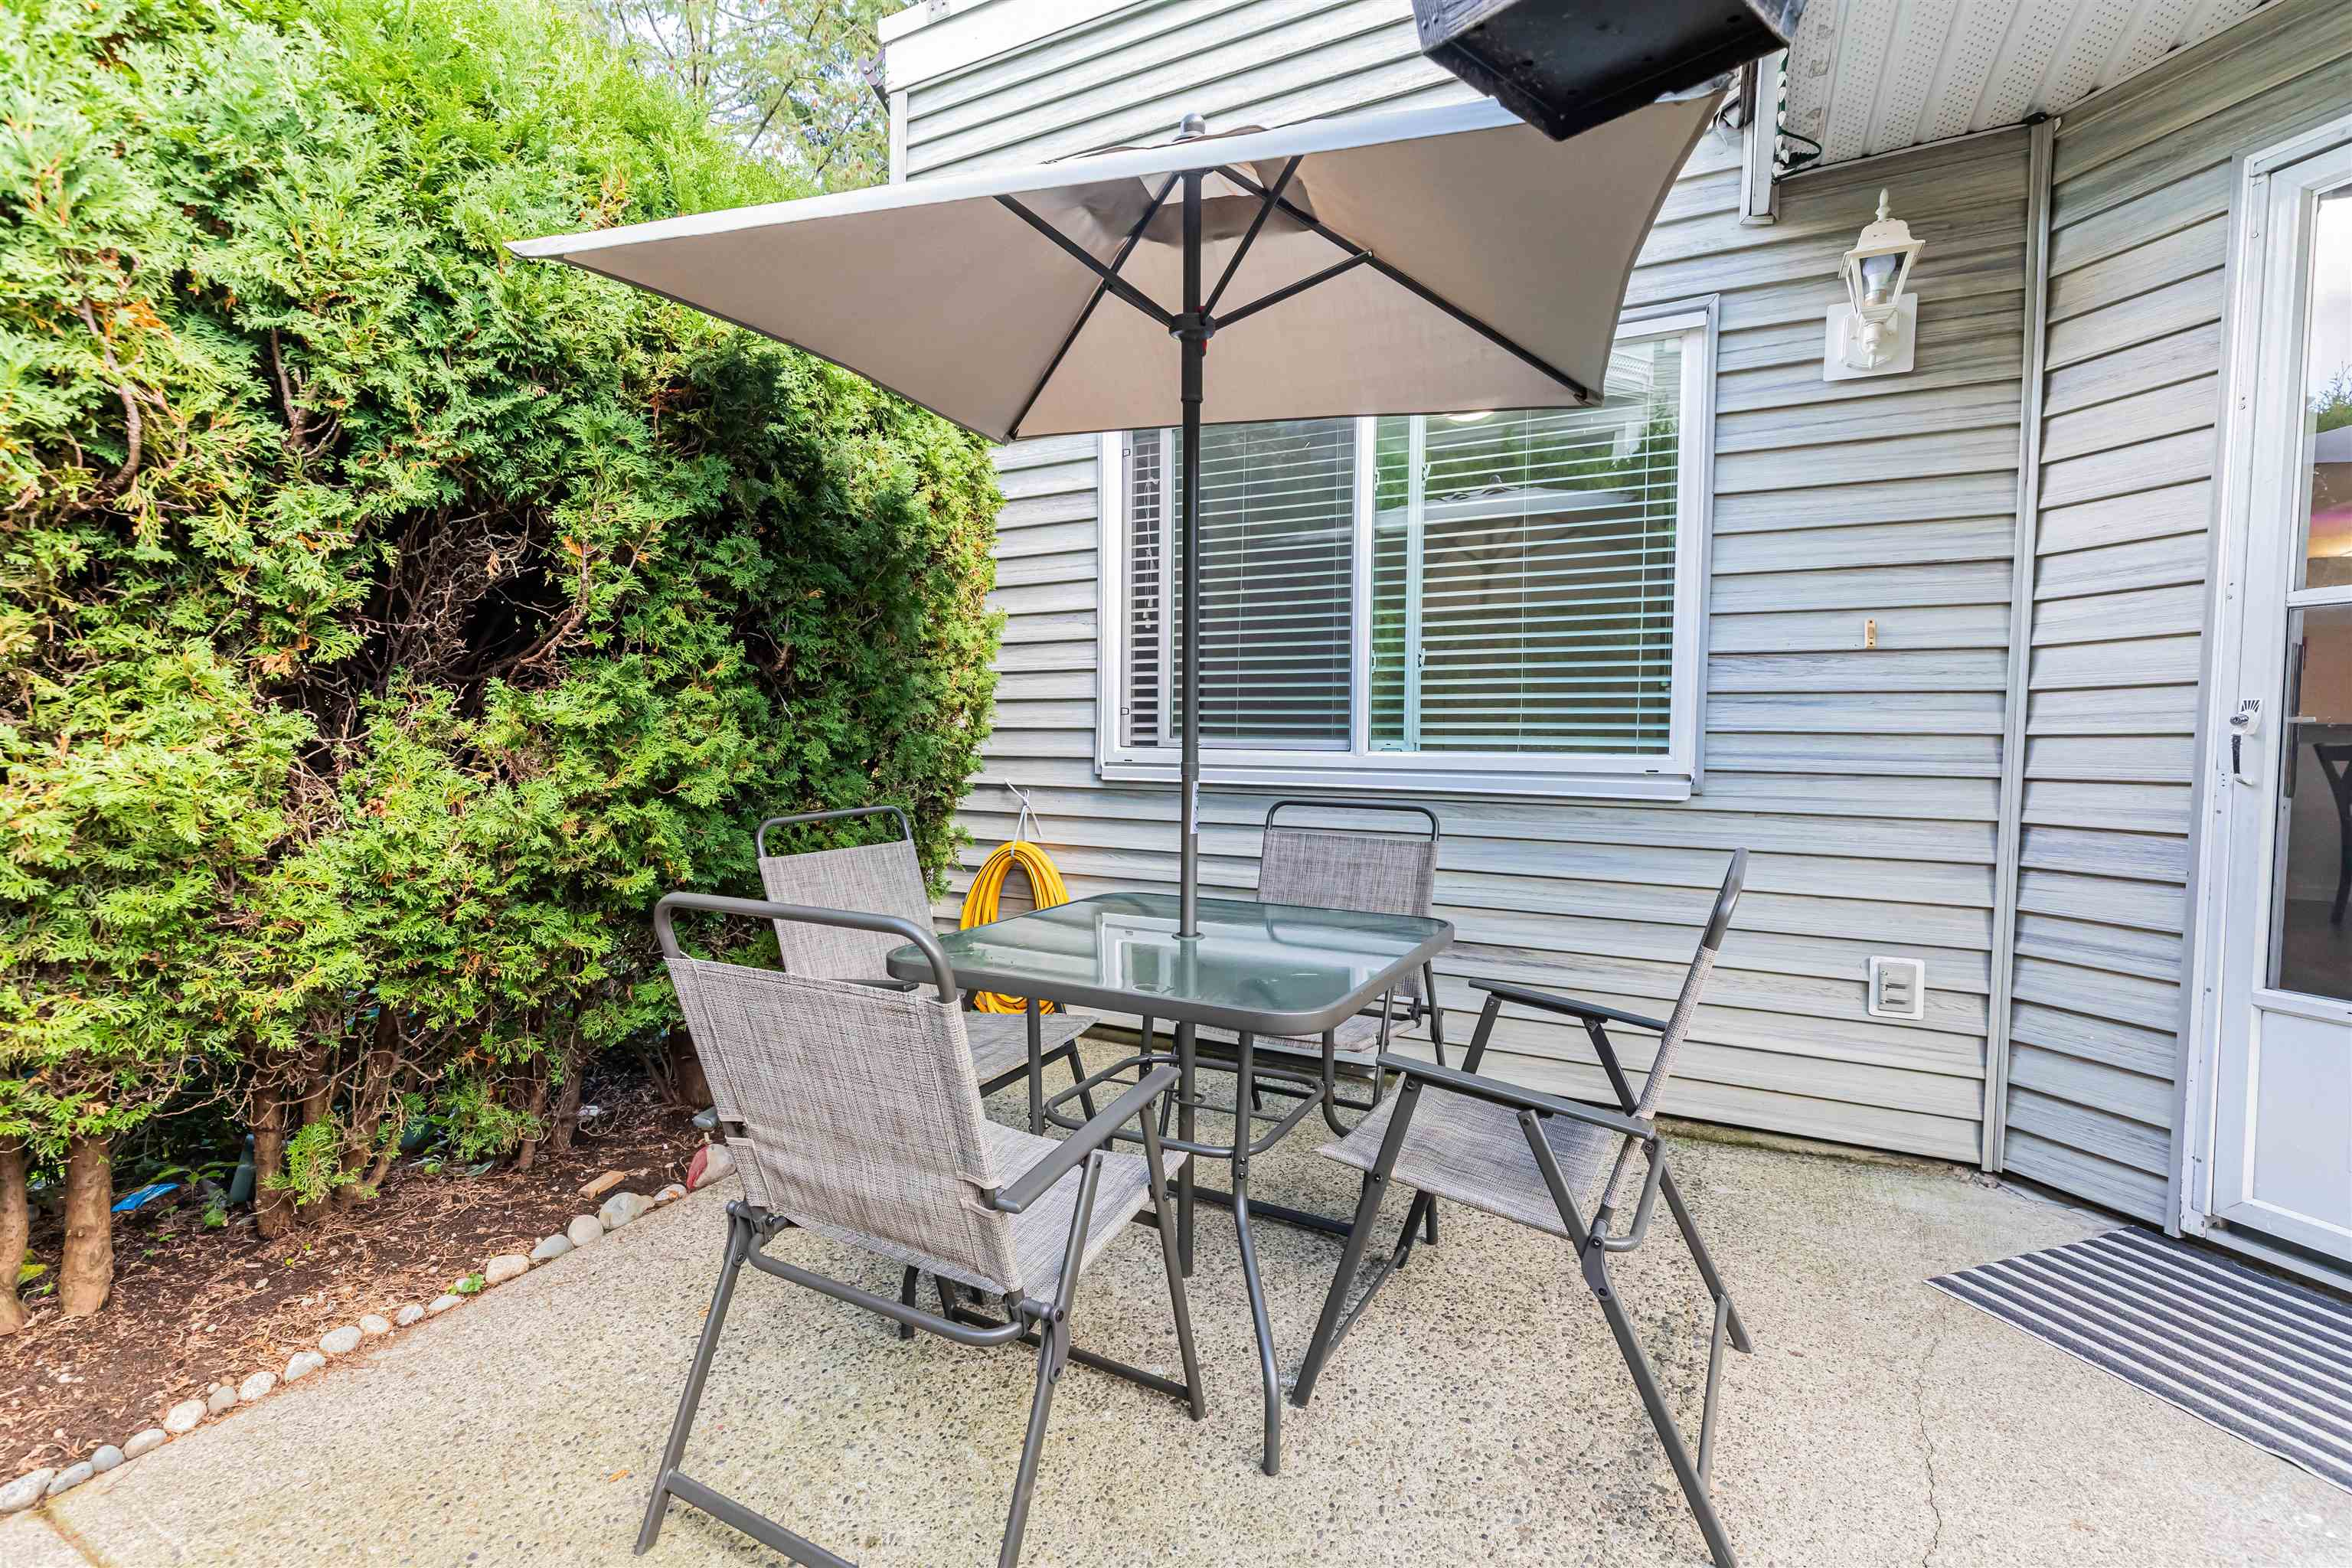 6 13670 84 AVENUE - Bear Creek Green Timbers Townhouse for sale, 2 Bedrooms (R2625536) - #23